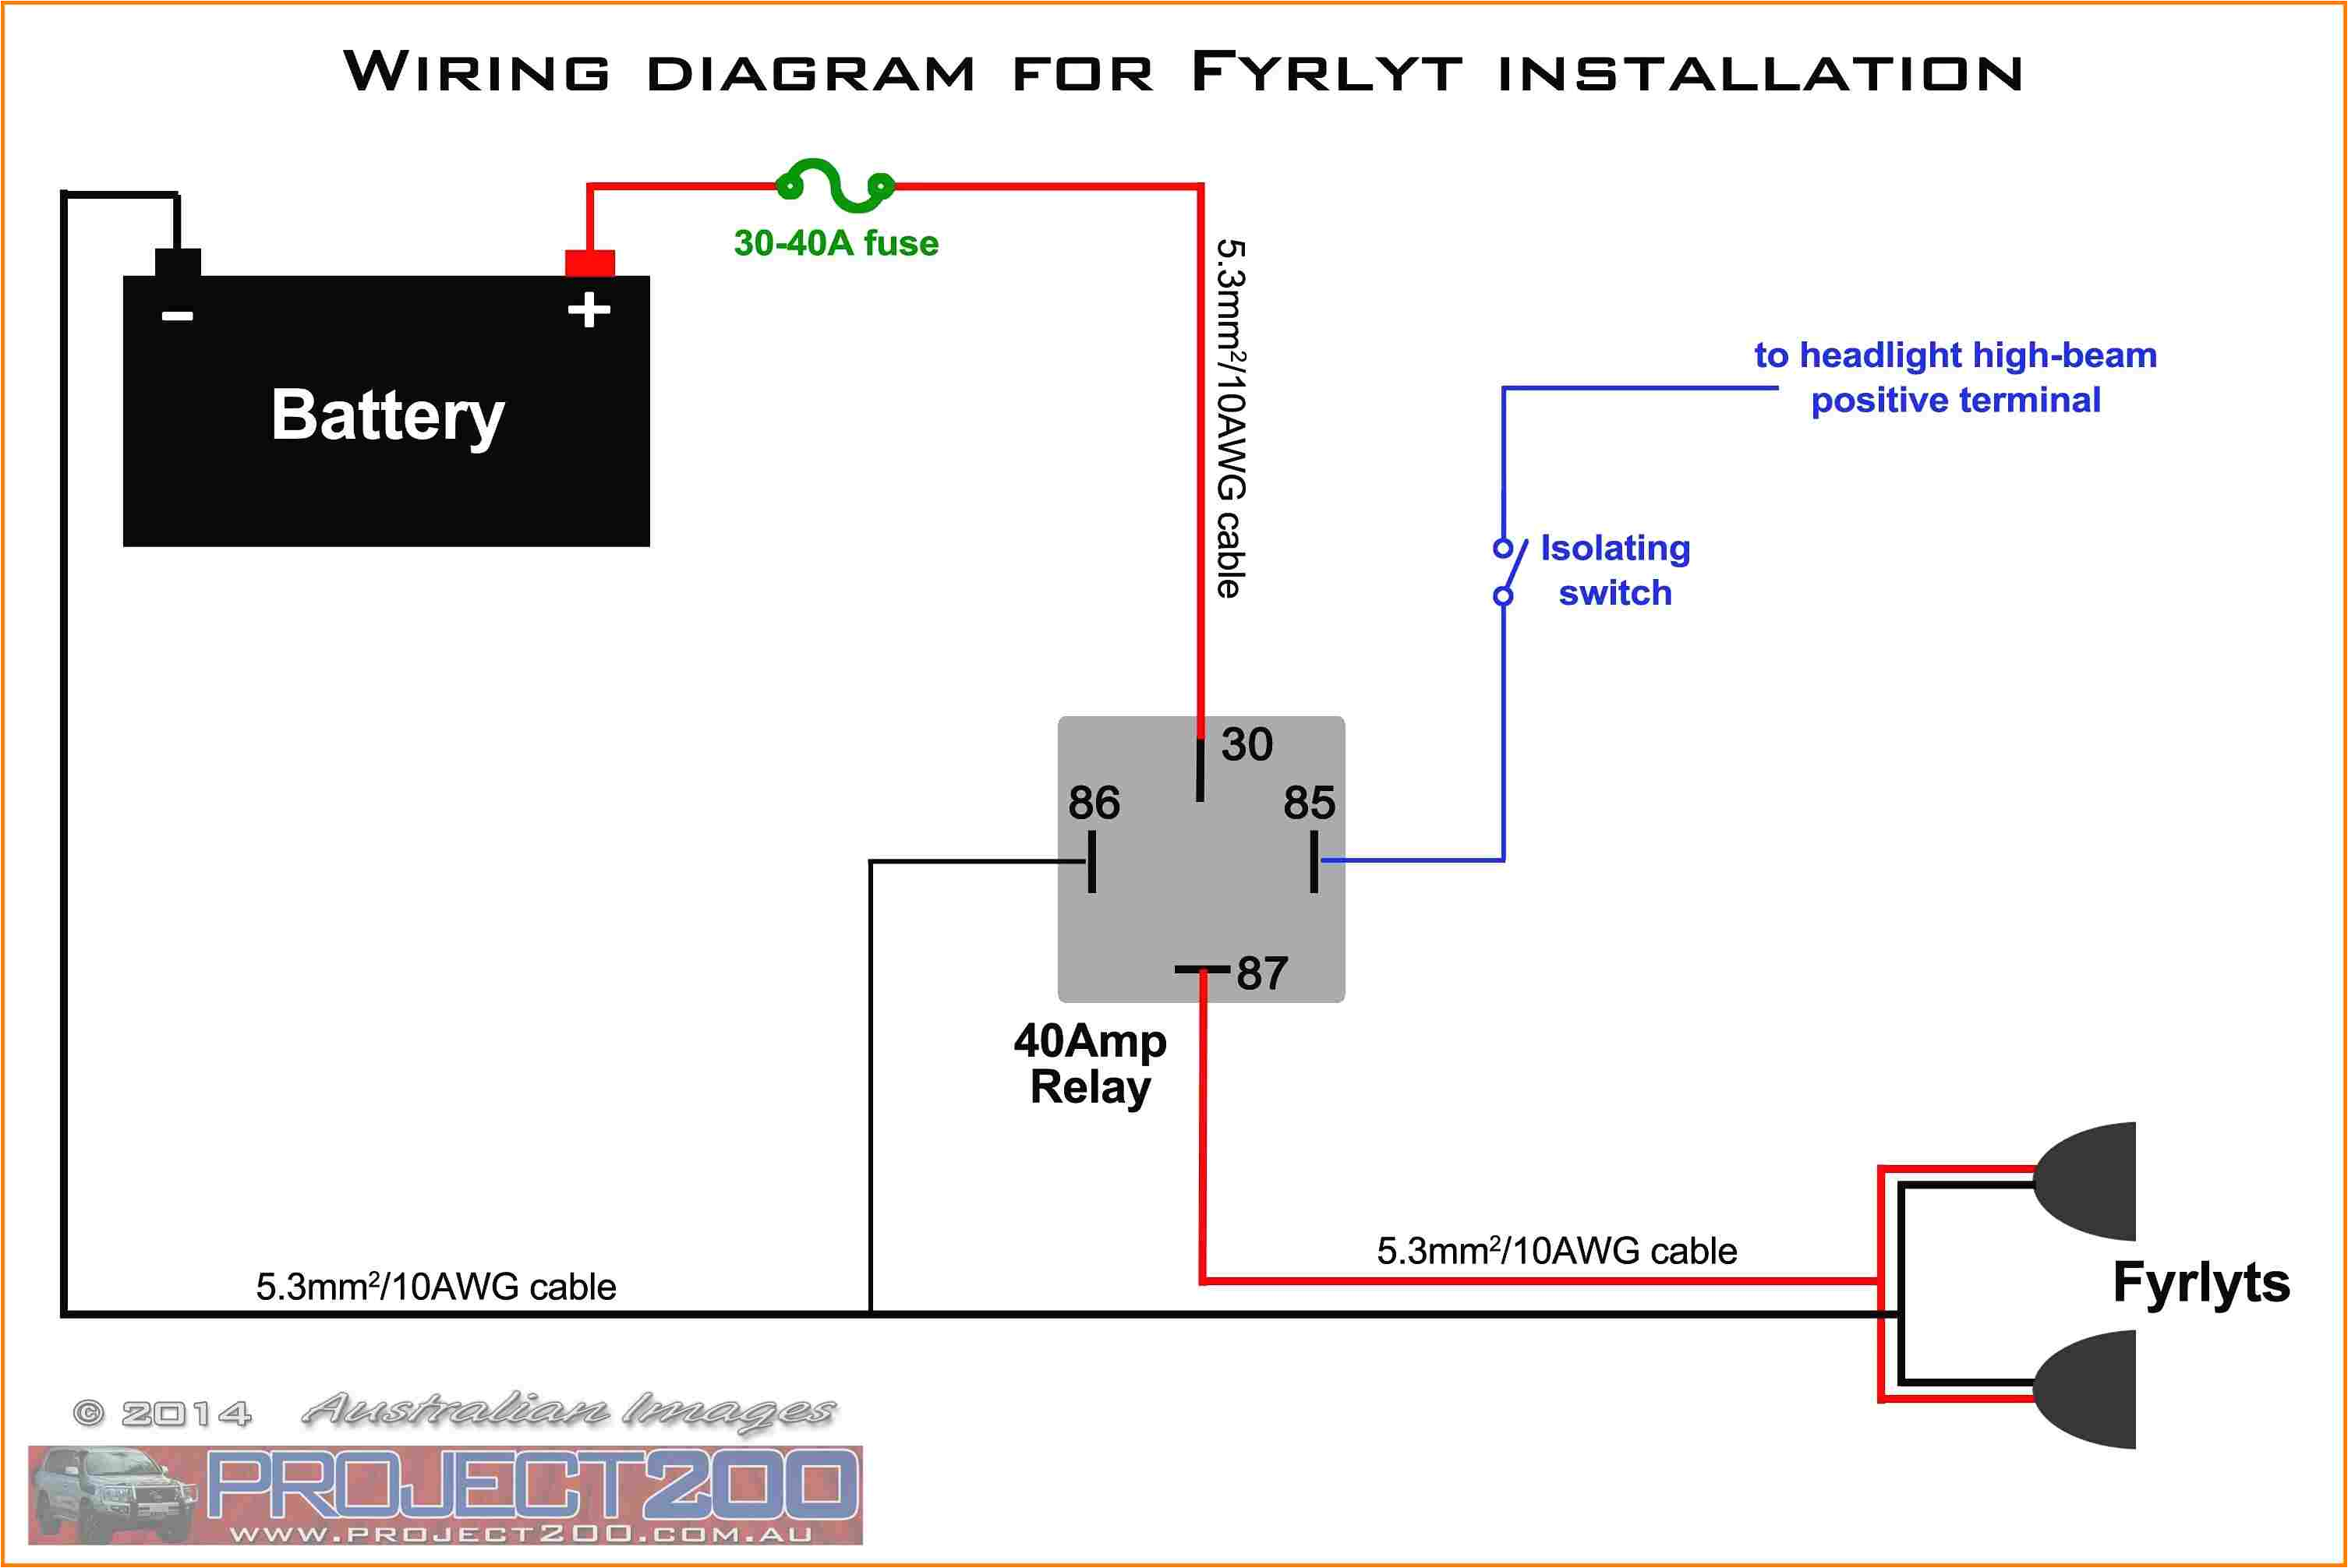 4 wire relay diagram wiring diagram files 4 pin relay wiring diagram with switch 4 wire relay diagram